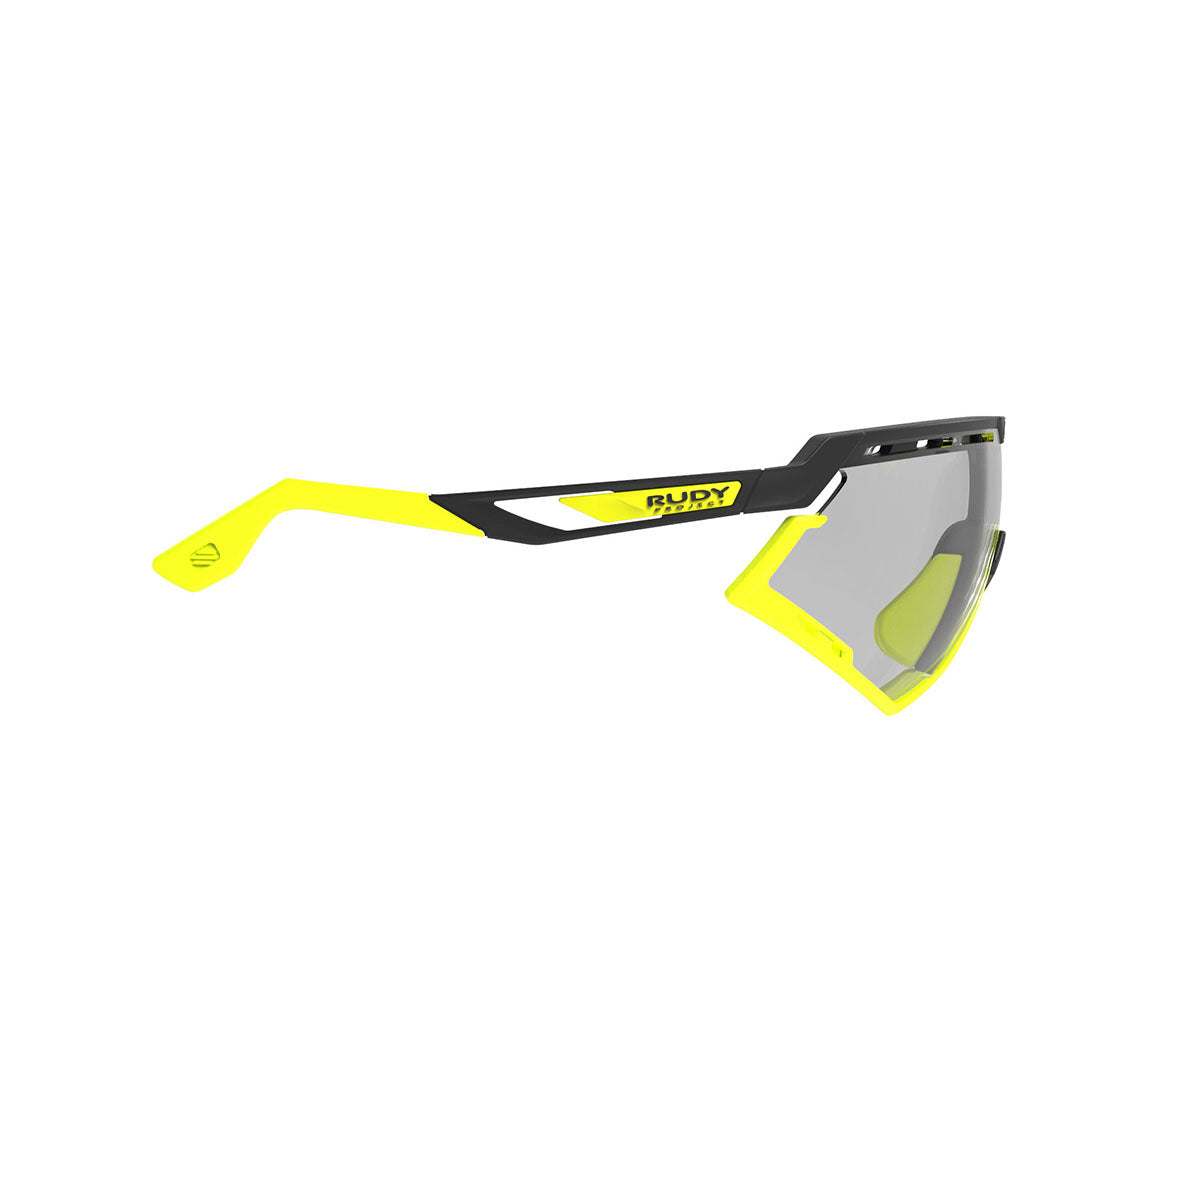 Rudy Project - Defender - frame color: Matte Black - lens color: ImpactX-2 Photochromic Clear to Laser Black - Bumper Color: Yelow Fluo - photo angle: Side Variant Hover Image